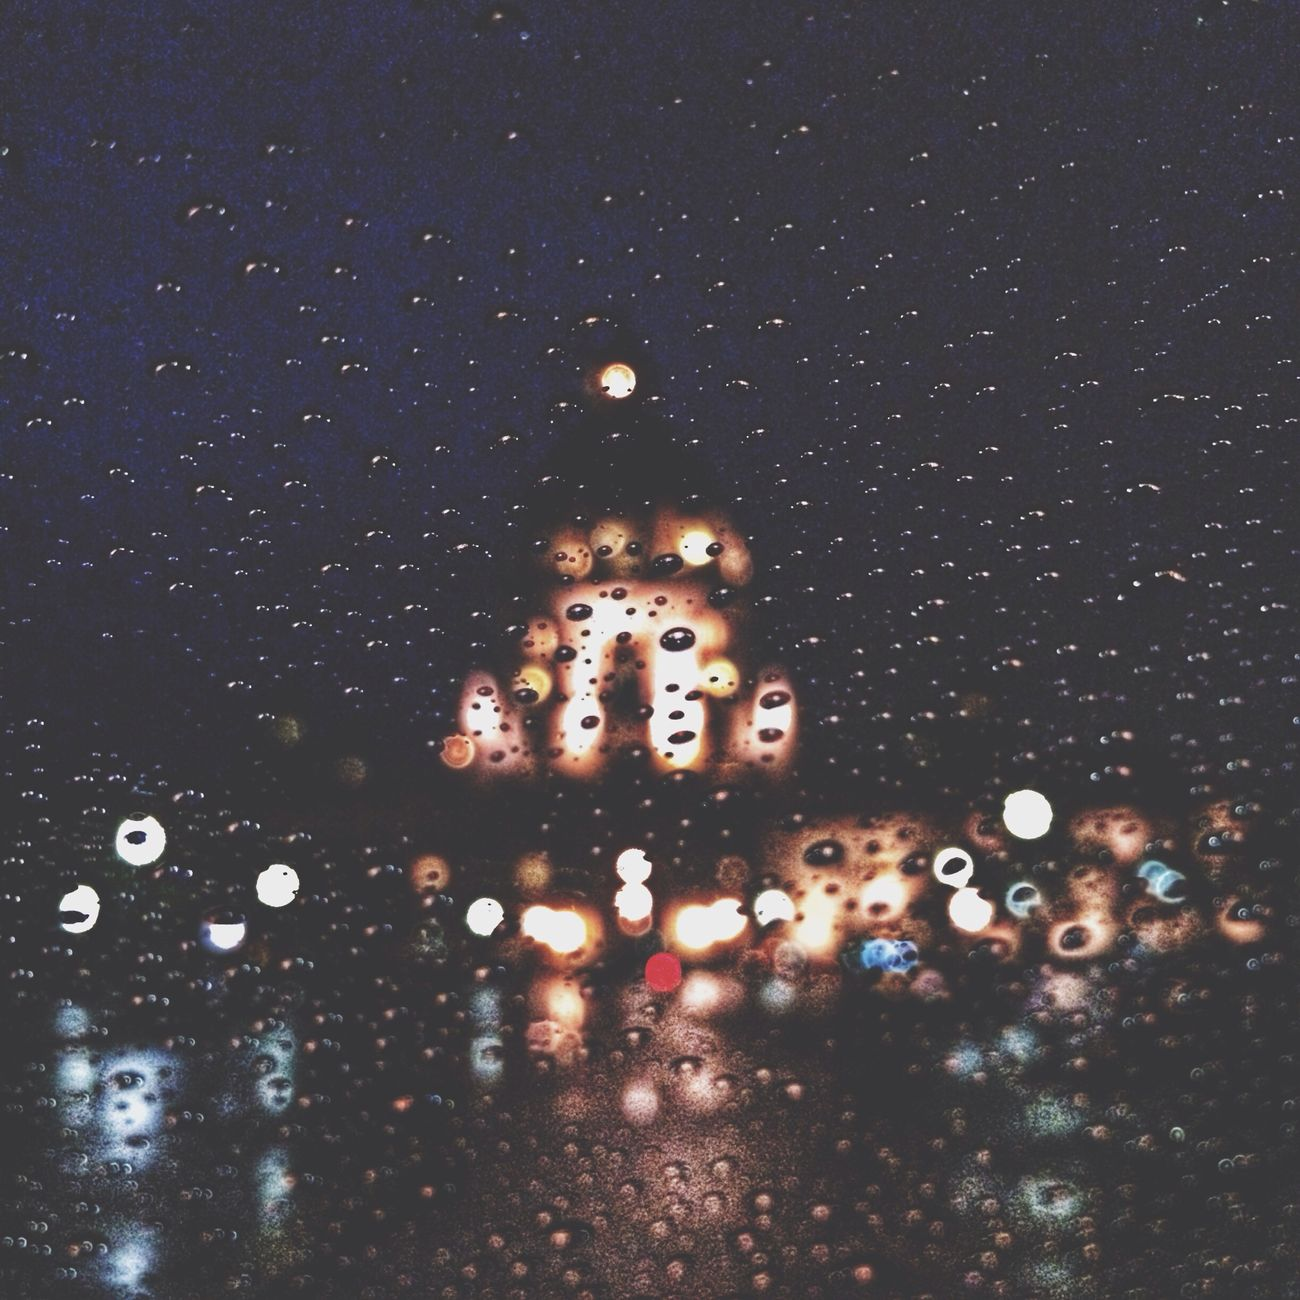 Raindrops. EyeEm Best Shots AMPt_community Streetphotography Eye4thestreets